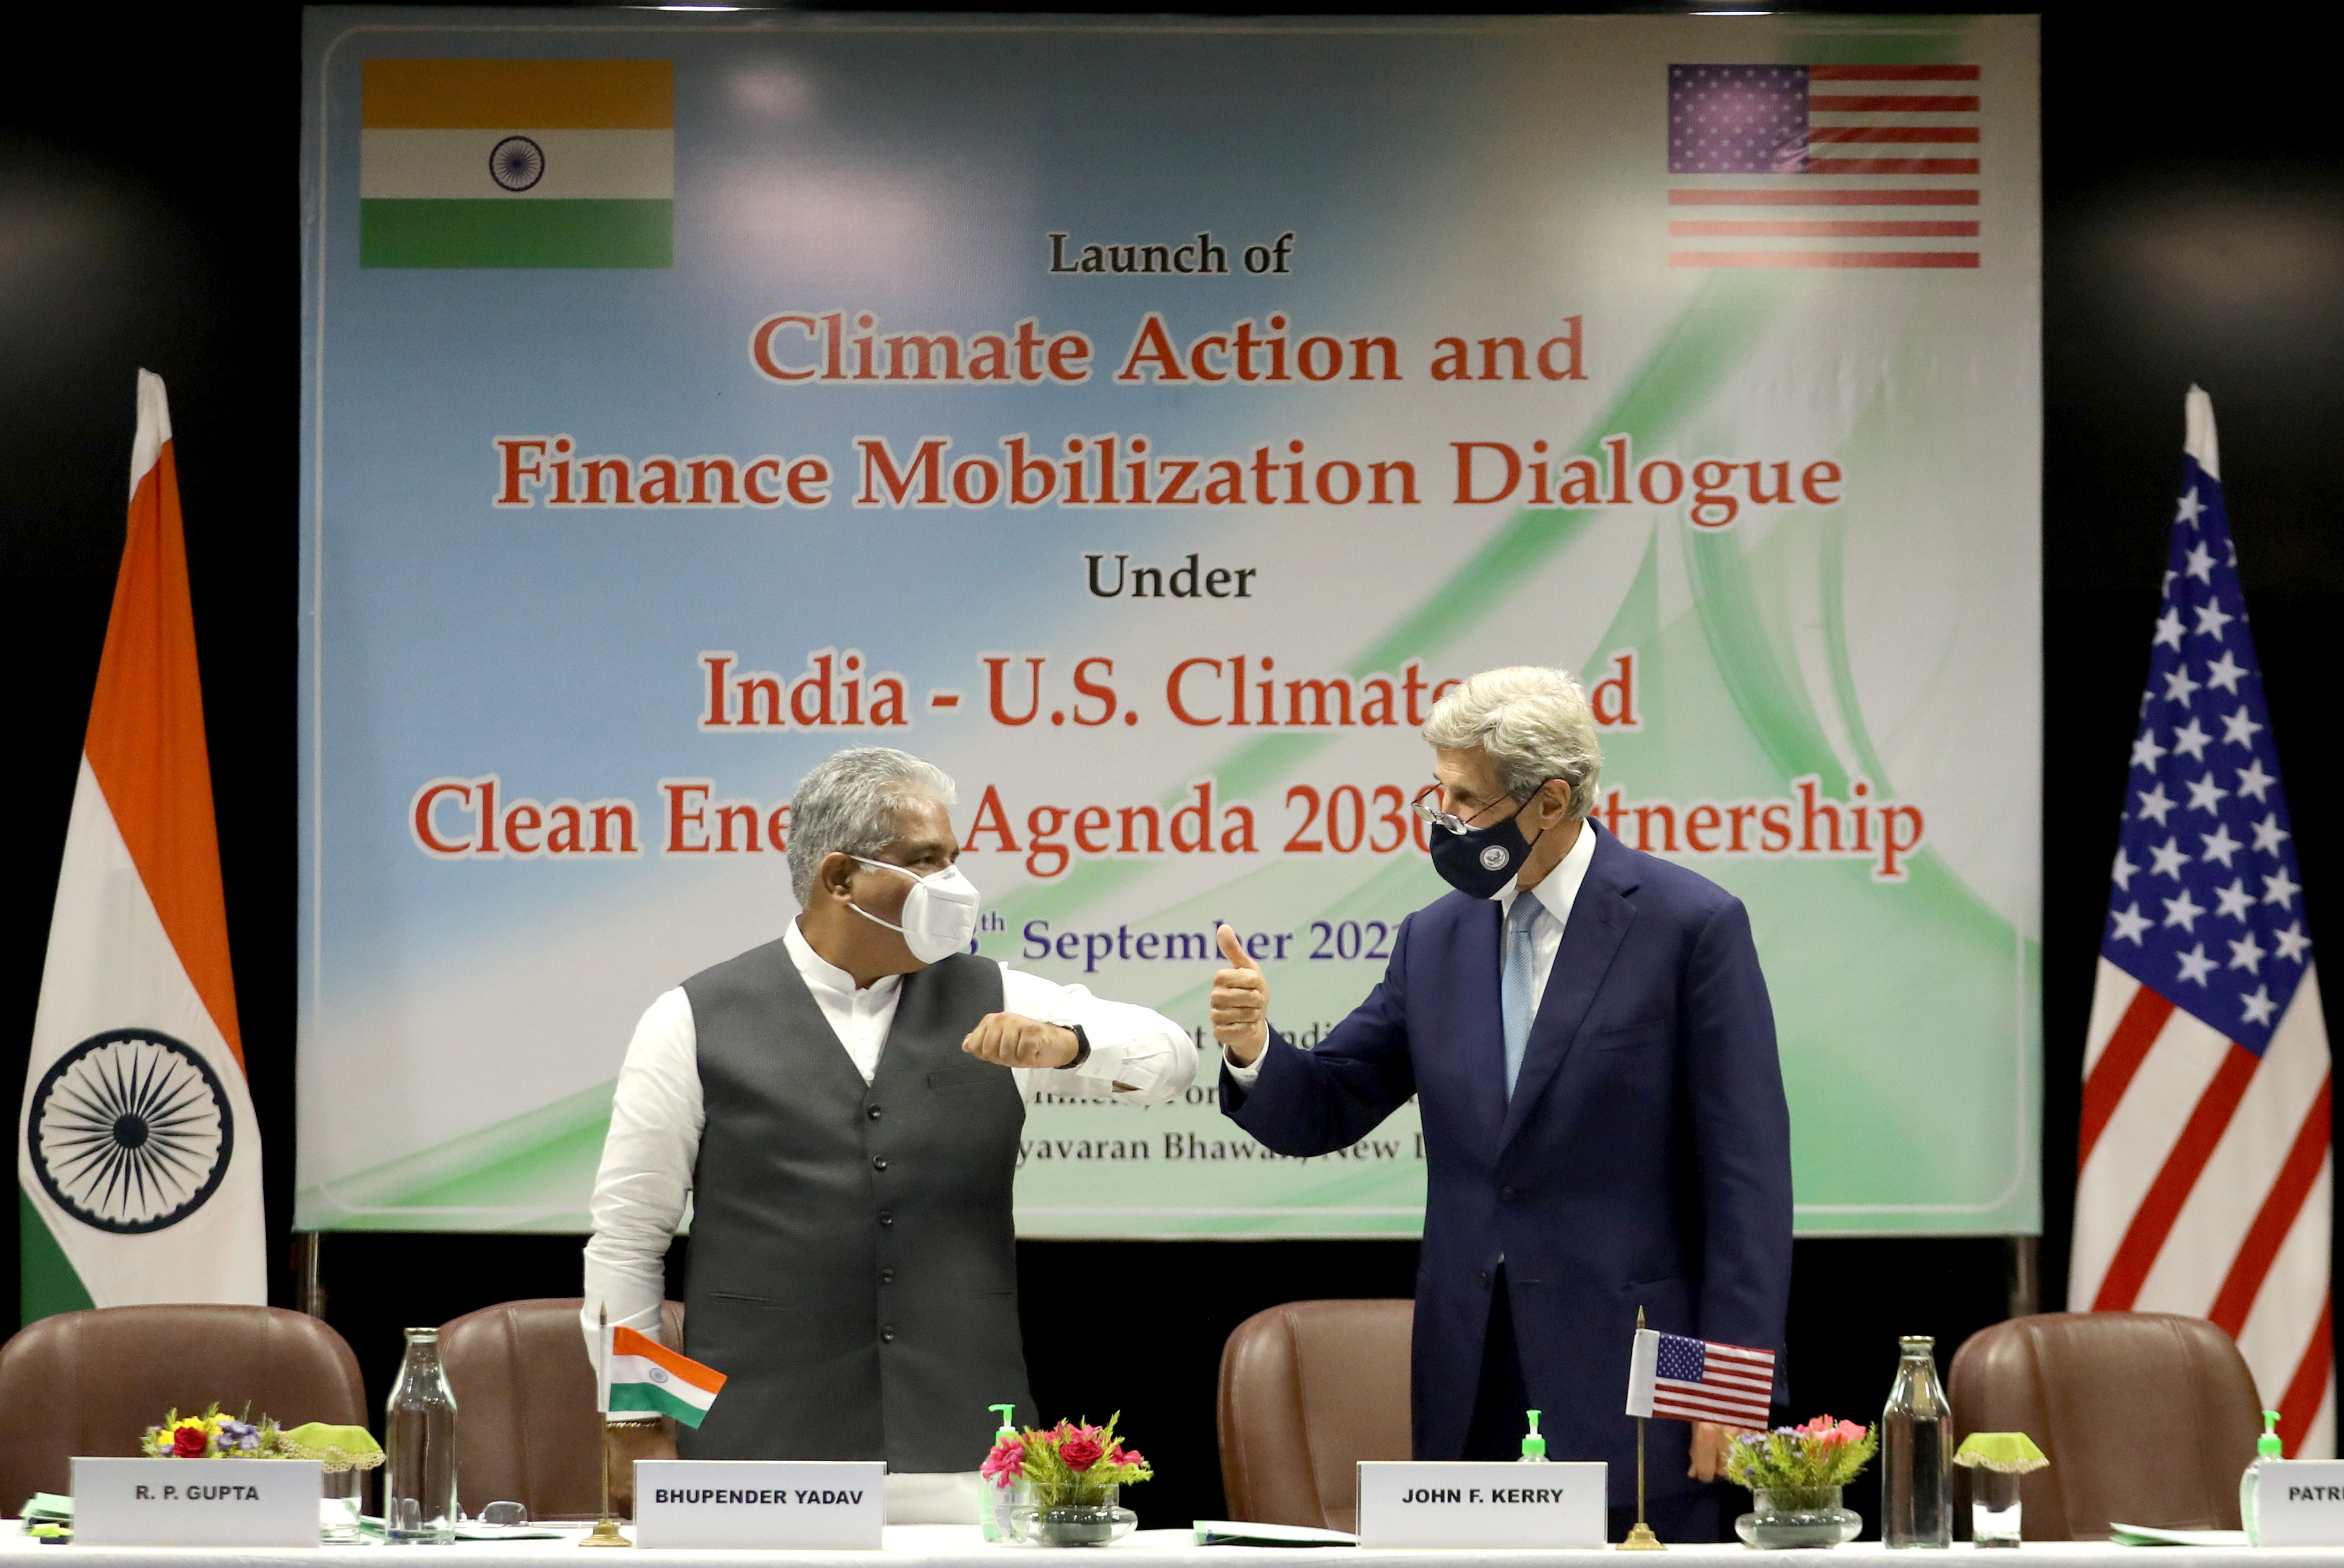 United States special presidential envoy for climate John Kerry and India?s Union Minister for Environment, Forest and Climate Change Bhupender Yadav launch the Climate Action and Finance Mobilisation Dialogue (CAFMD) under India-US Climate and Clean Energy Agenda 2030 Partnership, in New Delhi, India, September 13, 2021